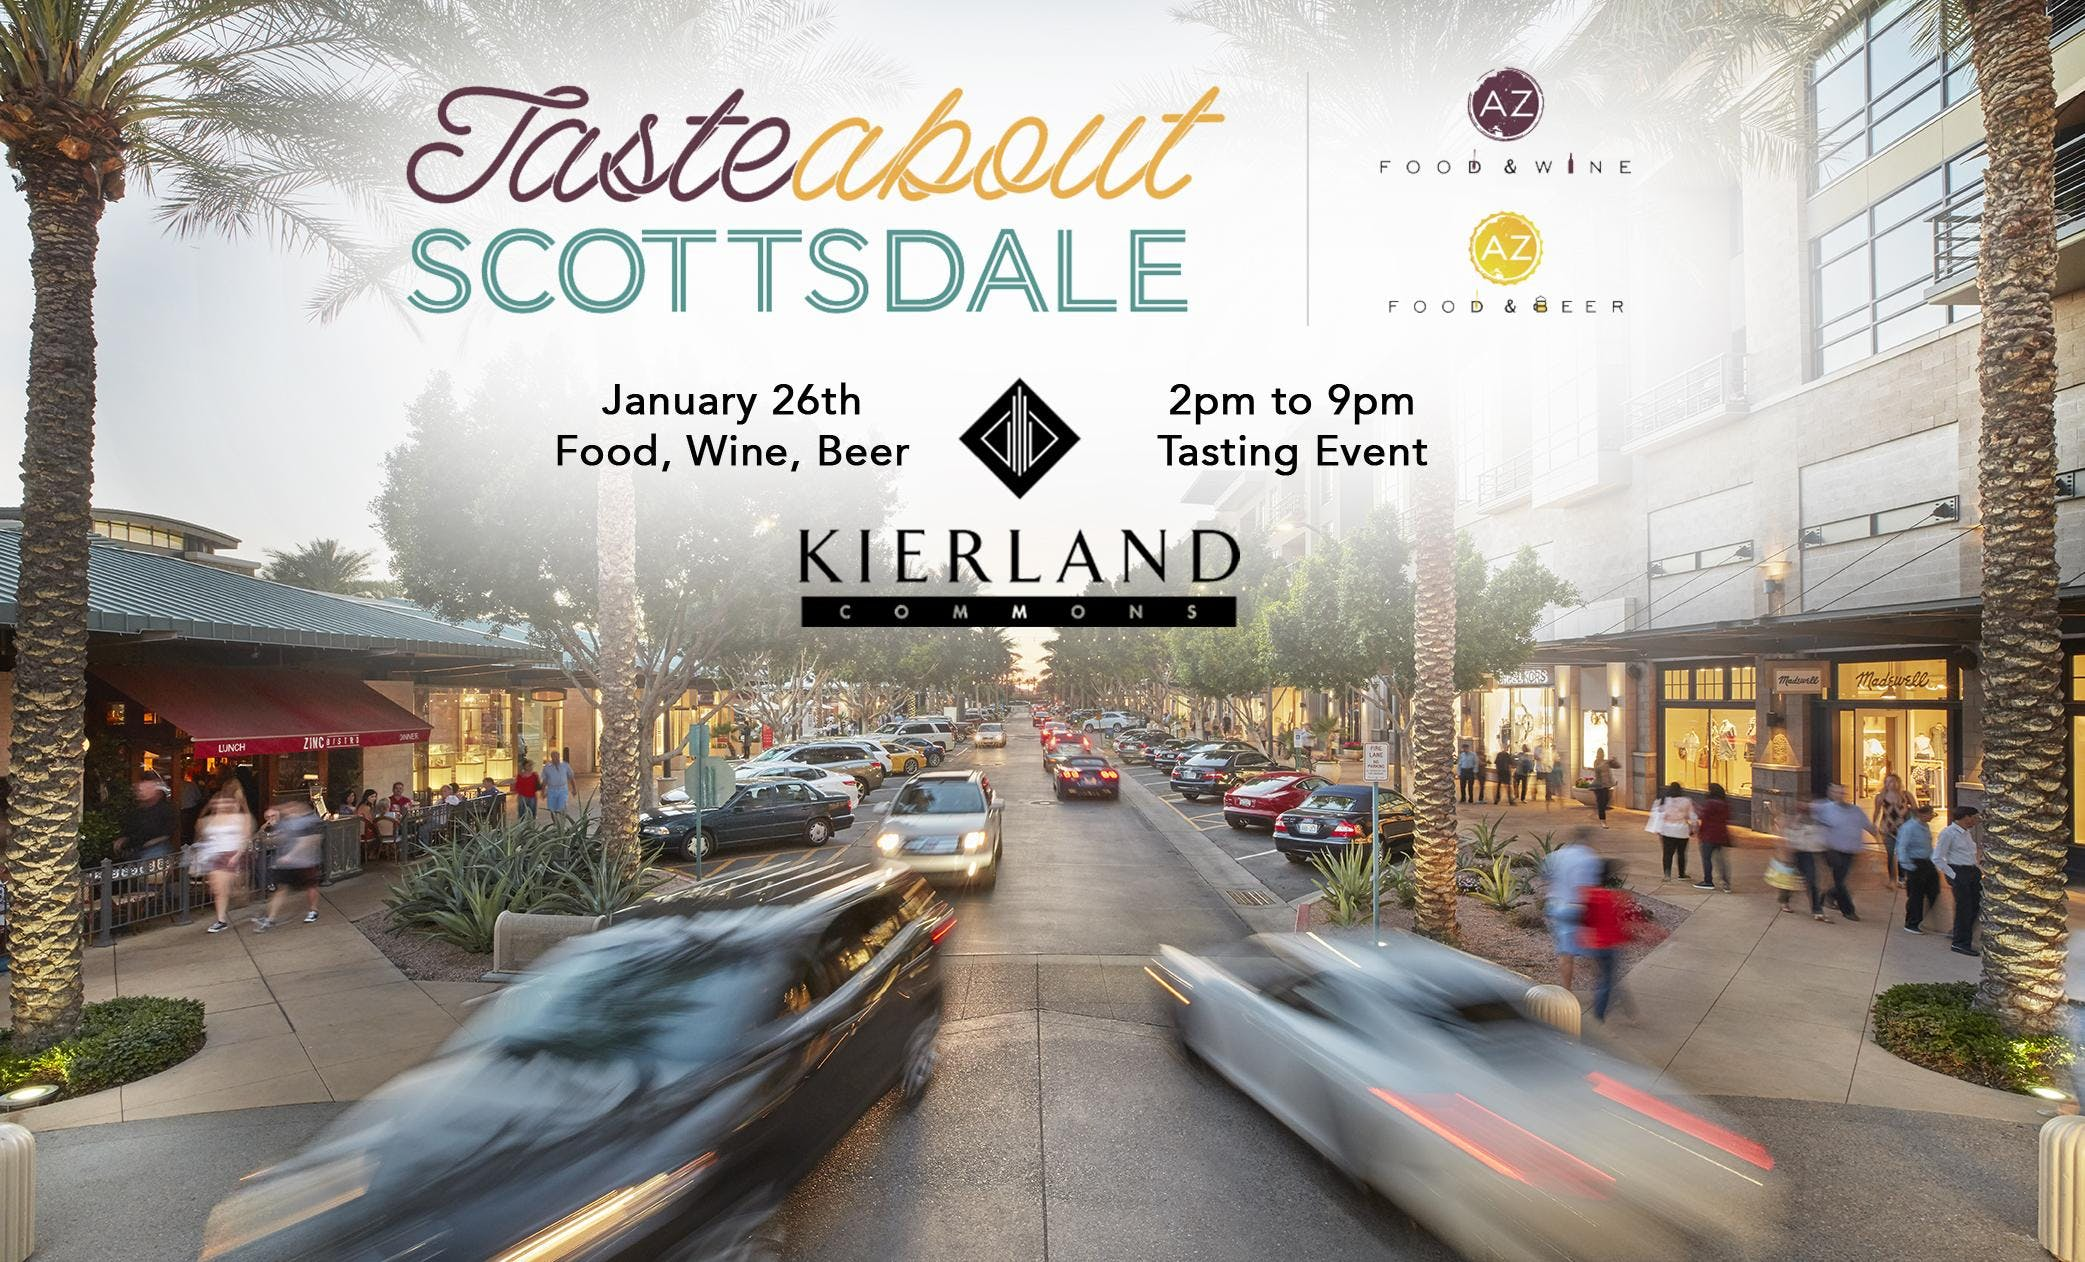 TasteAbout Scottsdale at Kierland Commons Presented by Az Food & Wine